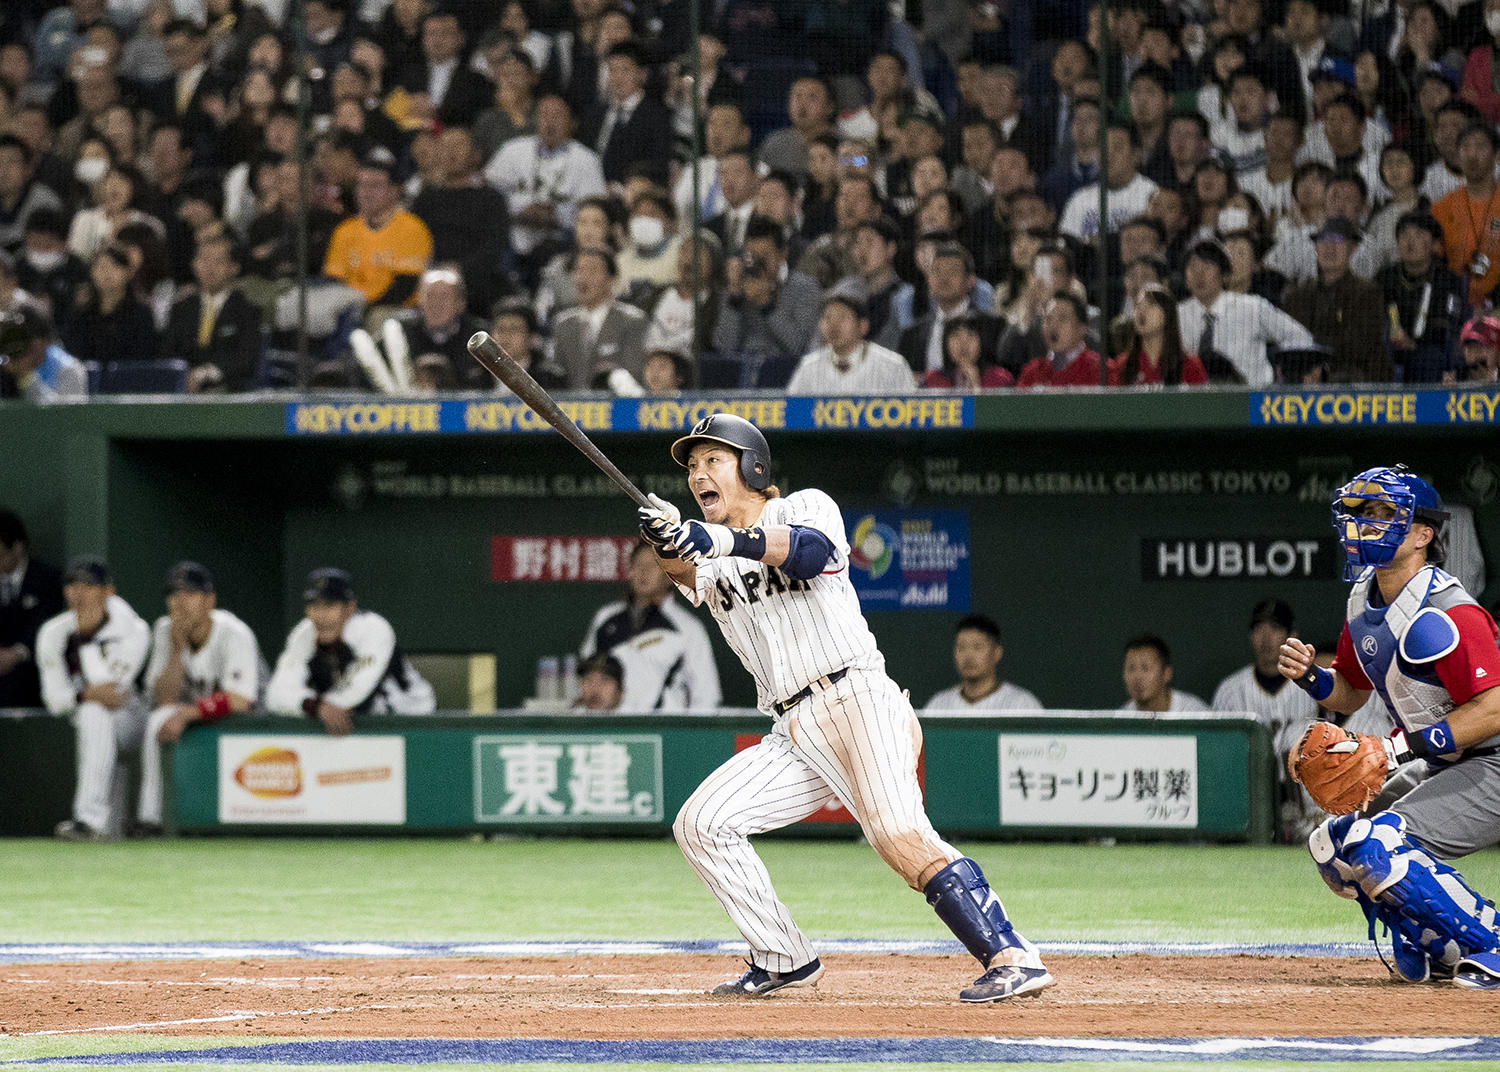 231e8e0f81065 Team Samurai Japan third baseman Nobuhiro Matsuda can t contain his  excitement as he watches his home run ball sail into the left field stands  in his team s ...